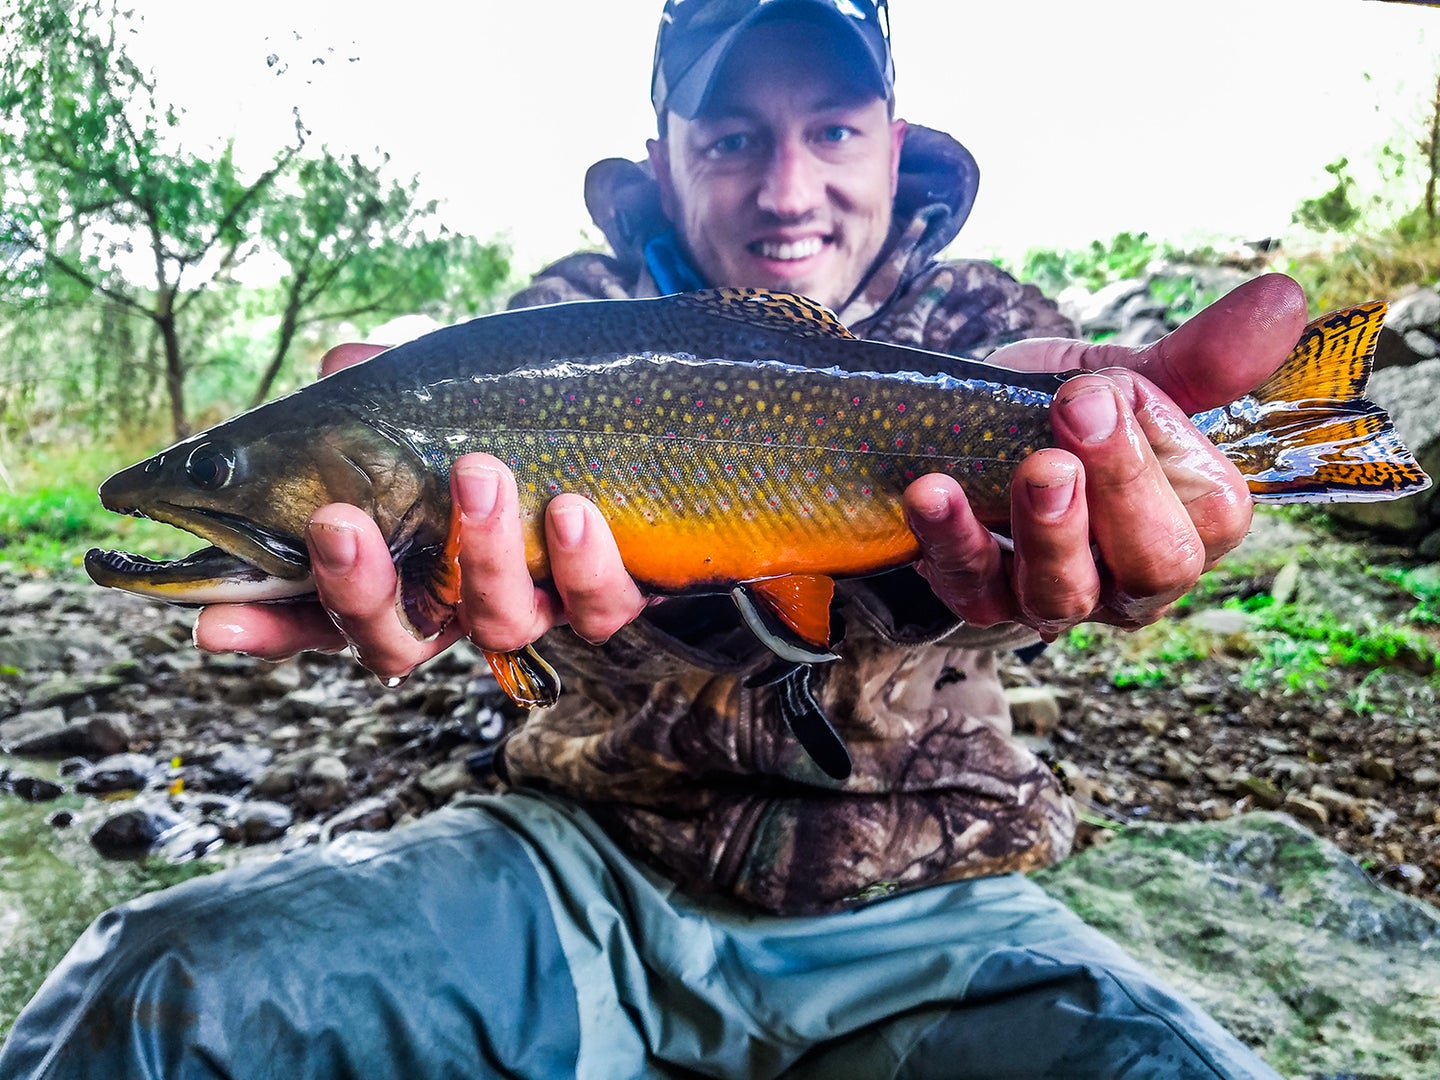 A white male in camo and blue jeans holds up a large brook trout in two hands.